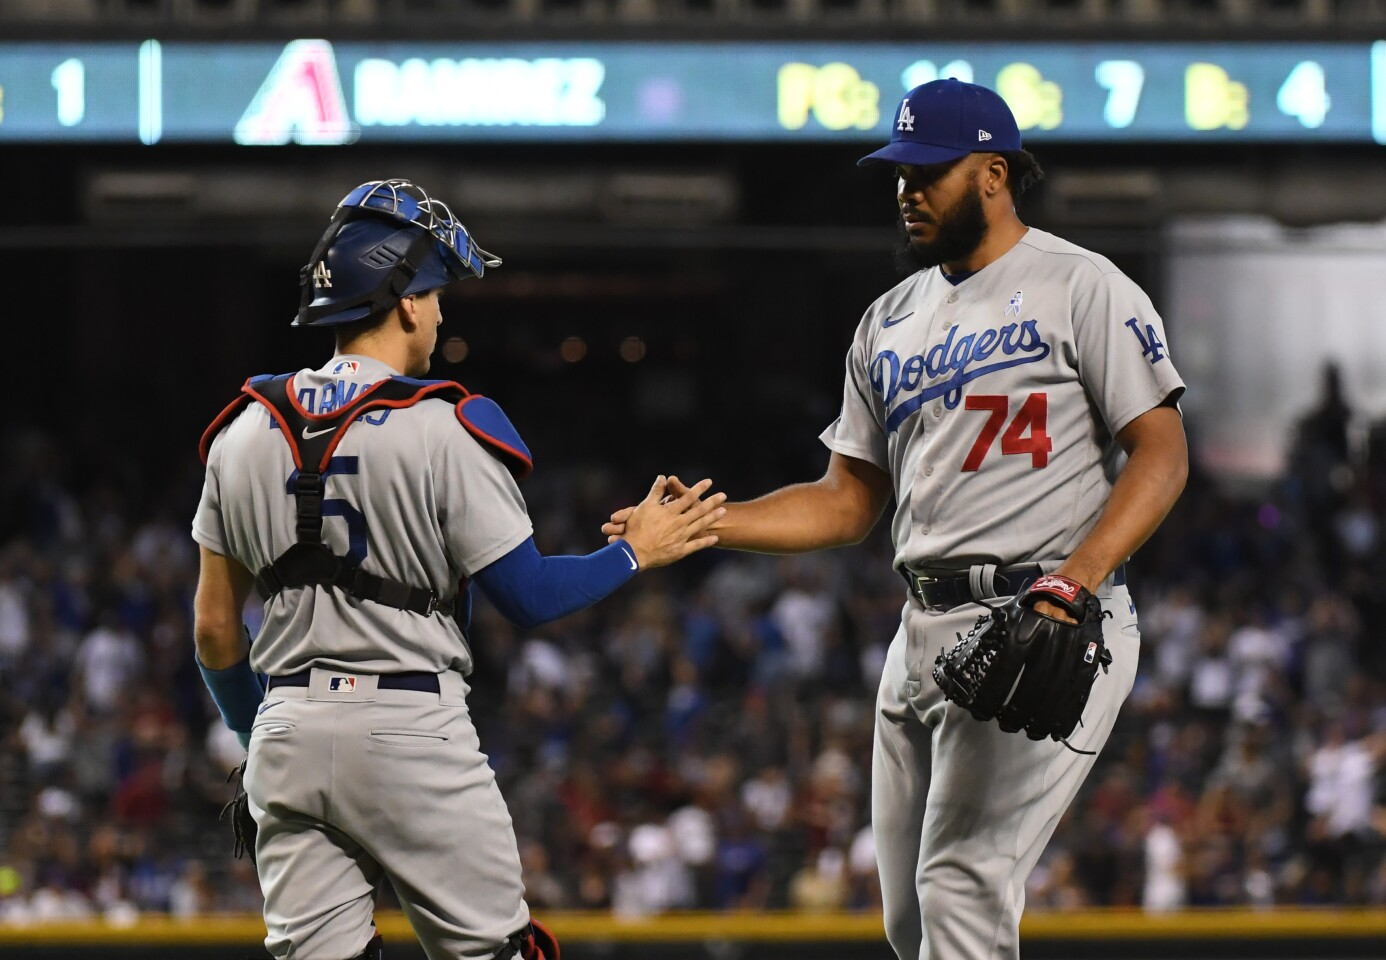 PHOENIX, ARIZONA - JUNE 20: Kenley Jansen #74 and Austin Barnes #15 of the Los Angeles Dodgers celebrate a 9-8 win over the Arizona Diamondbacks at Chase Field on June 20, 2021 in Phoenix, Arizona. (Photo by Norm Hall/Getty Images)